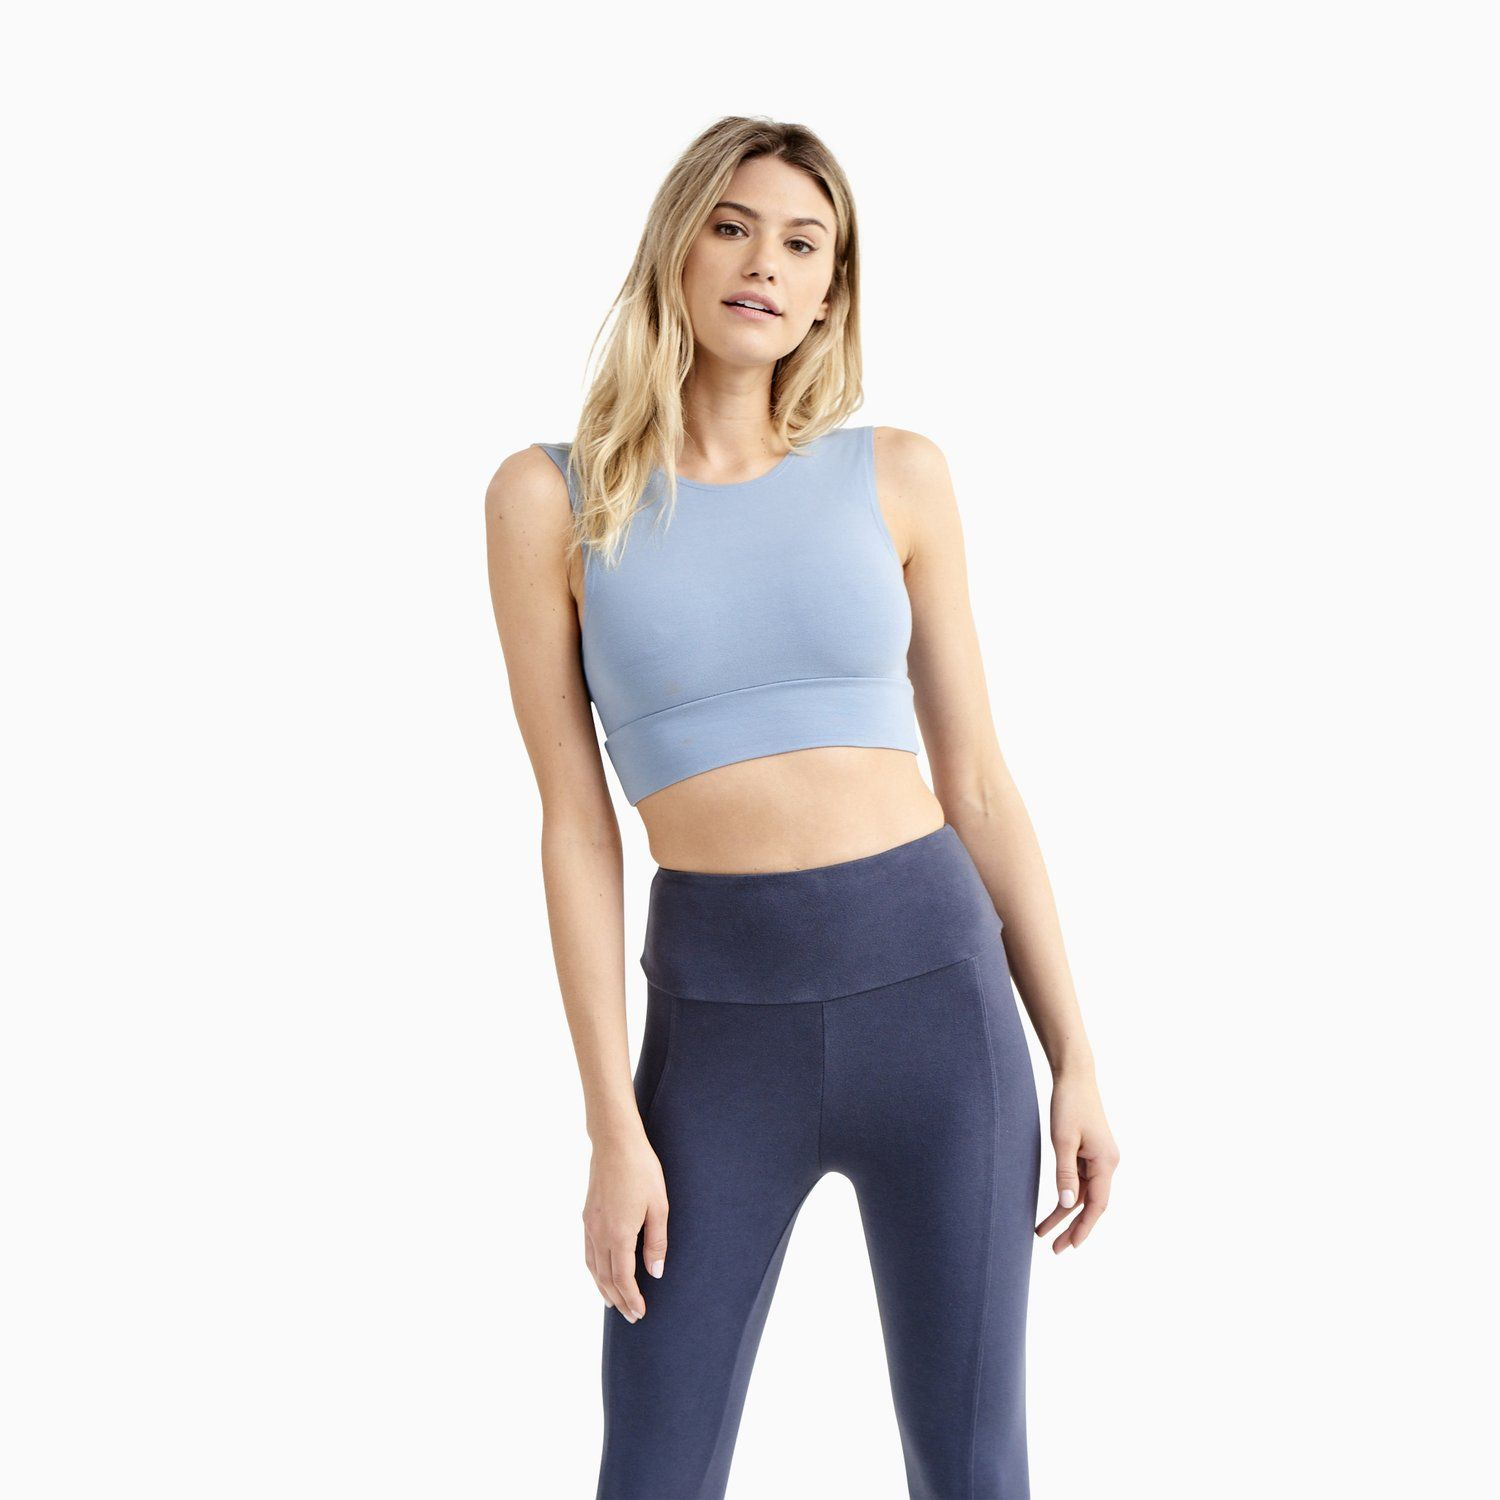 Our baby blue 87 organic cotton sports bra, great for